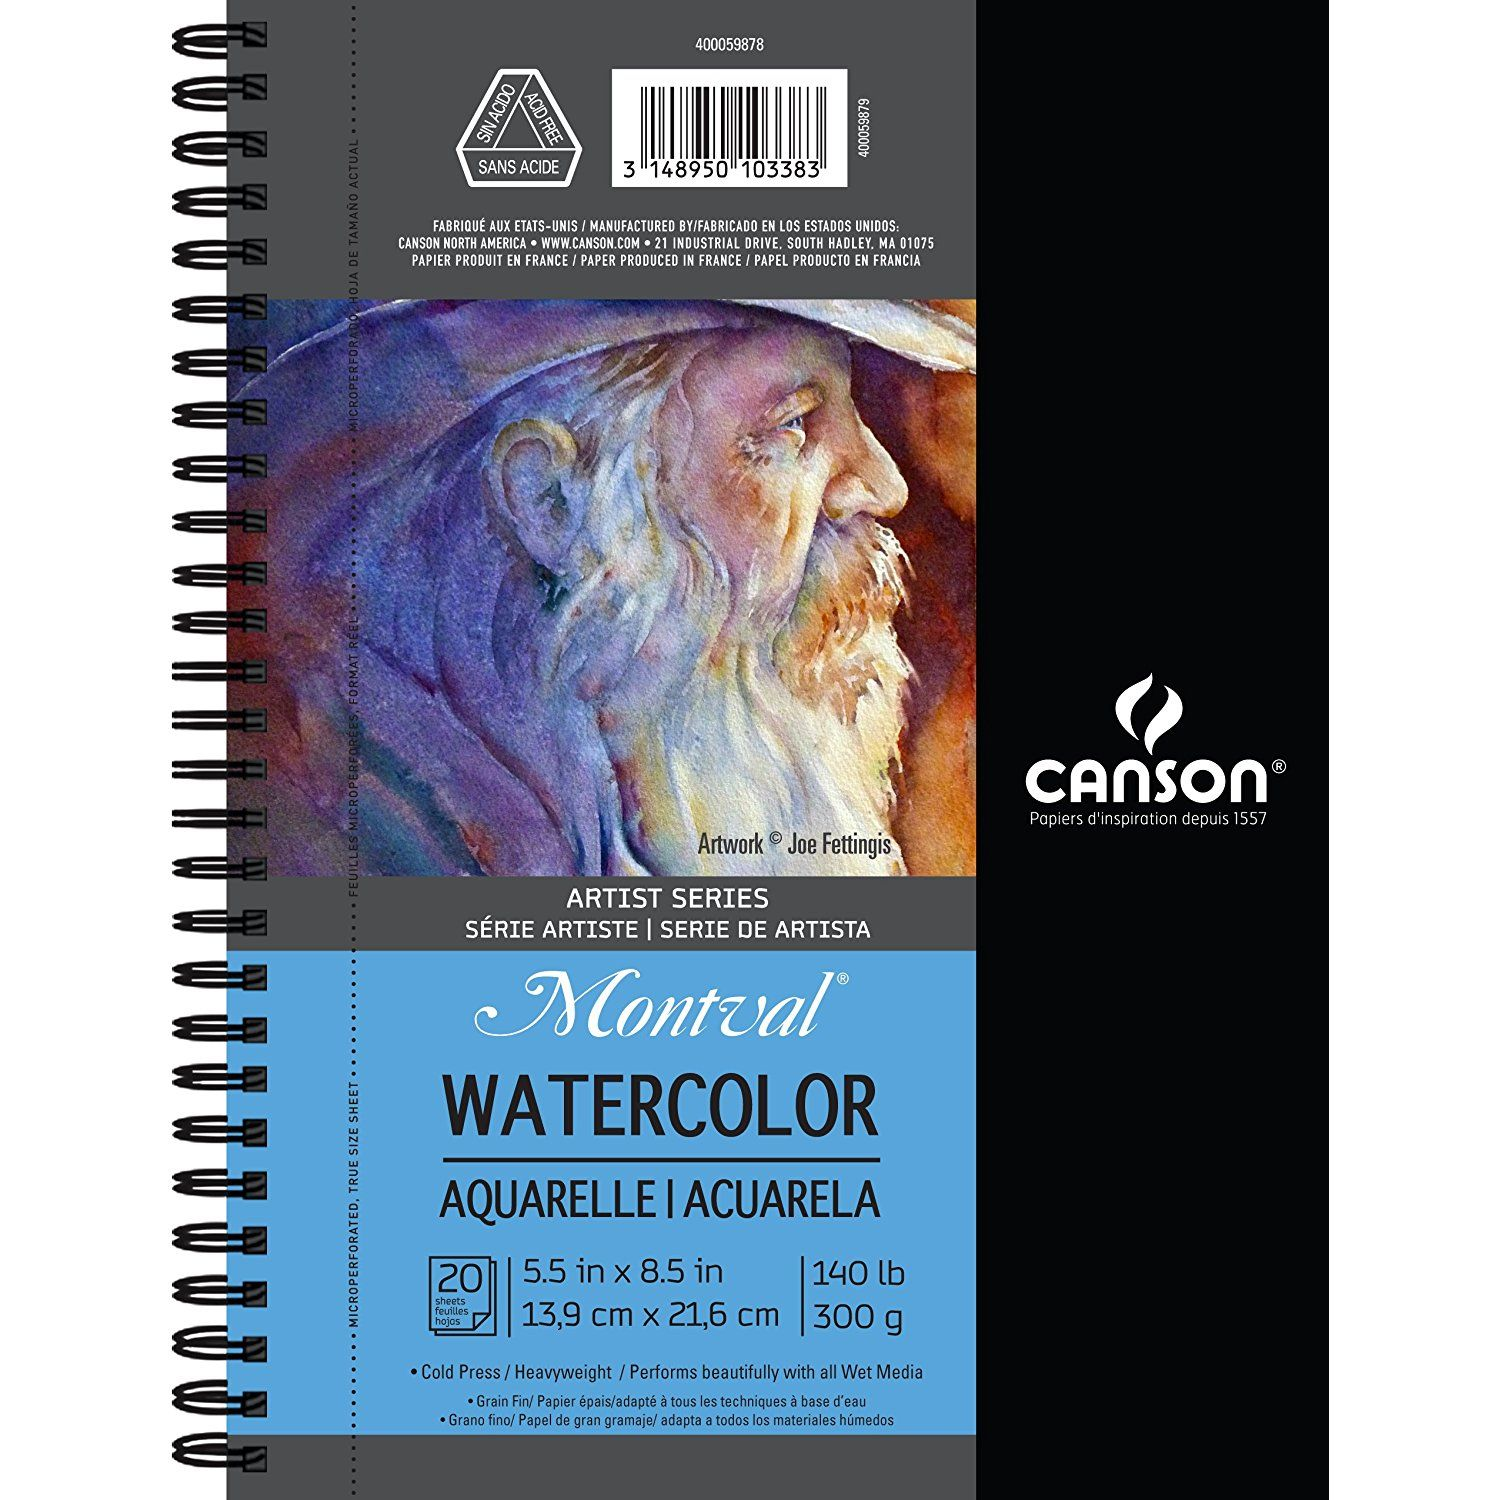 Canson Artist Series Watercolor Pad 5